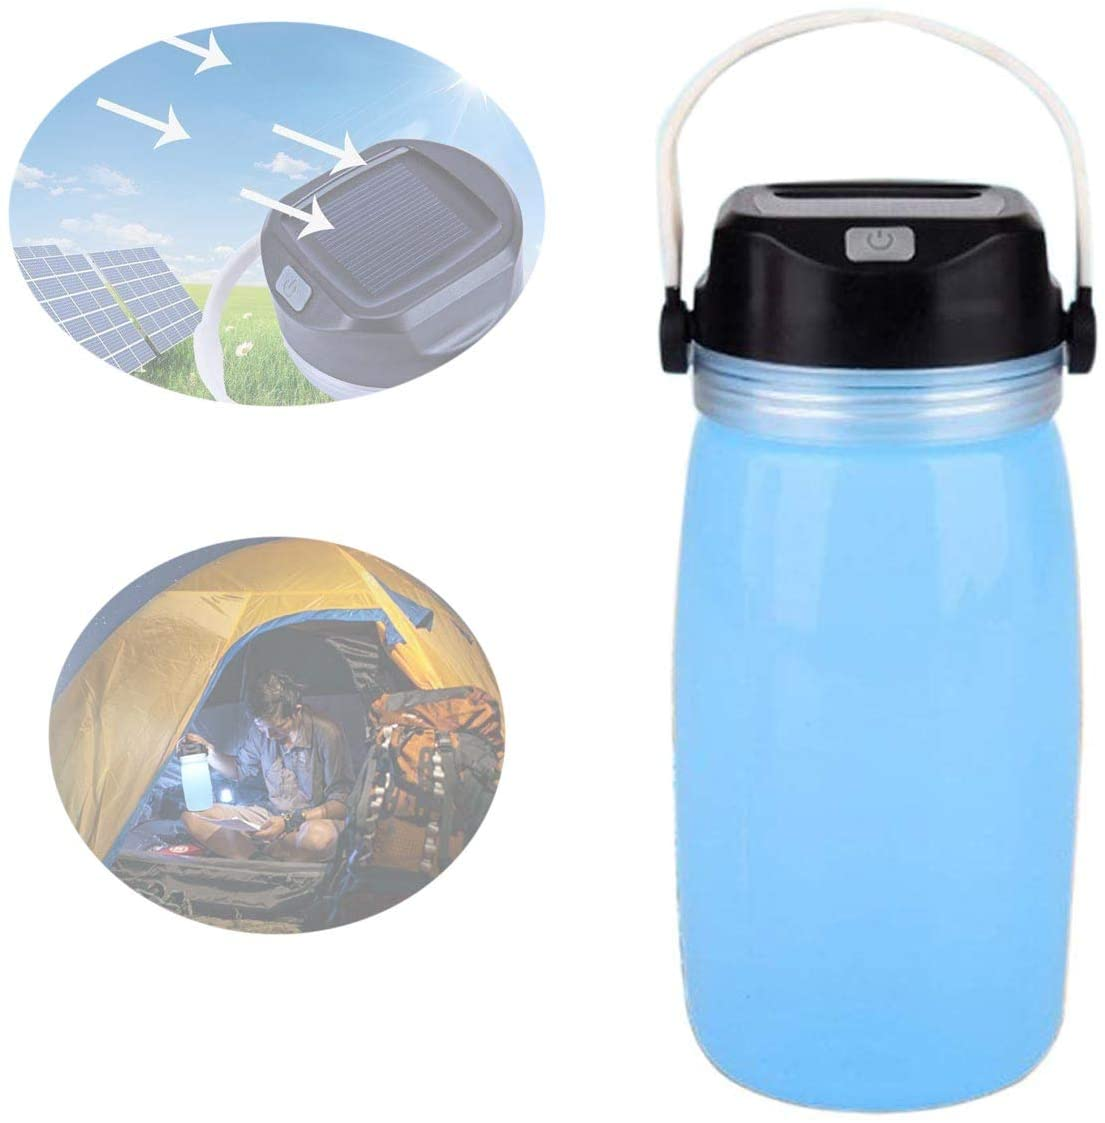 MUXAN LED Solar Kettle Camping Lamp, Silicone Solar Water Bottle Night Light Camping Lantern USB Rechargeable for Daily Drinking Hiking Outdoor Camping Travel